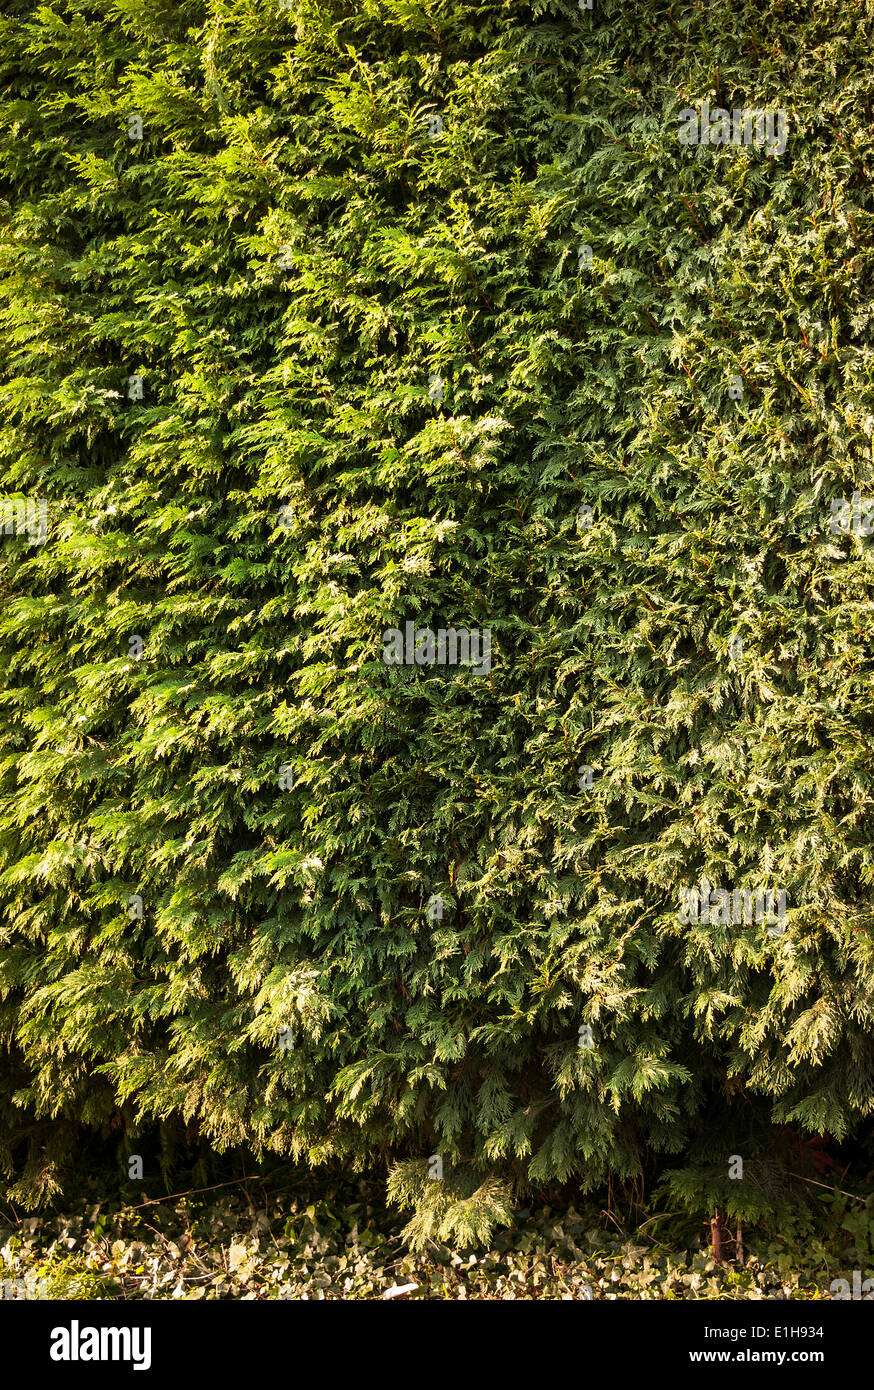 Conifer hedge showing before and after annual trimming - Stock Image